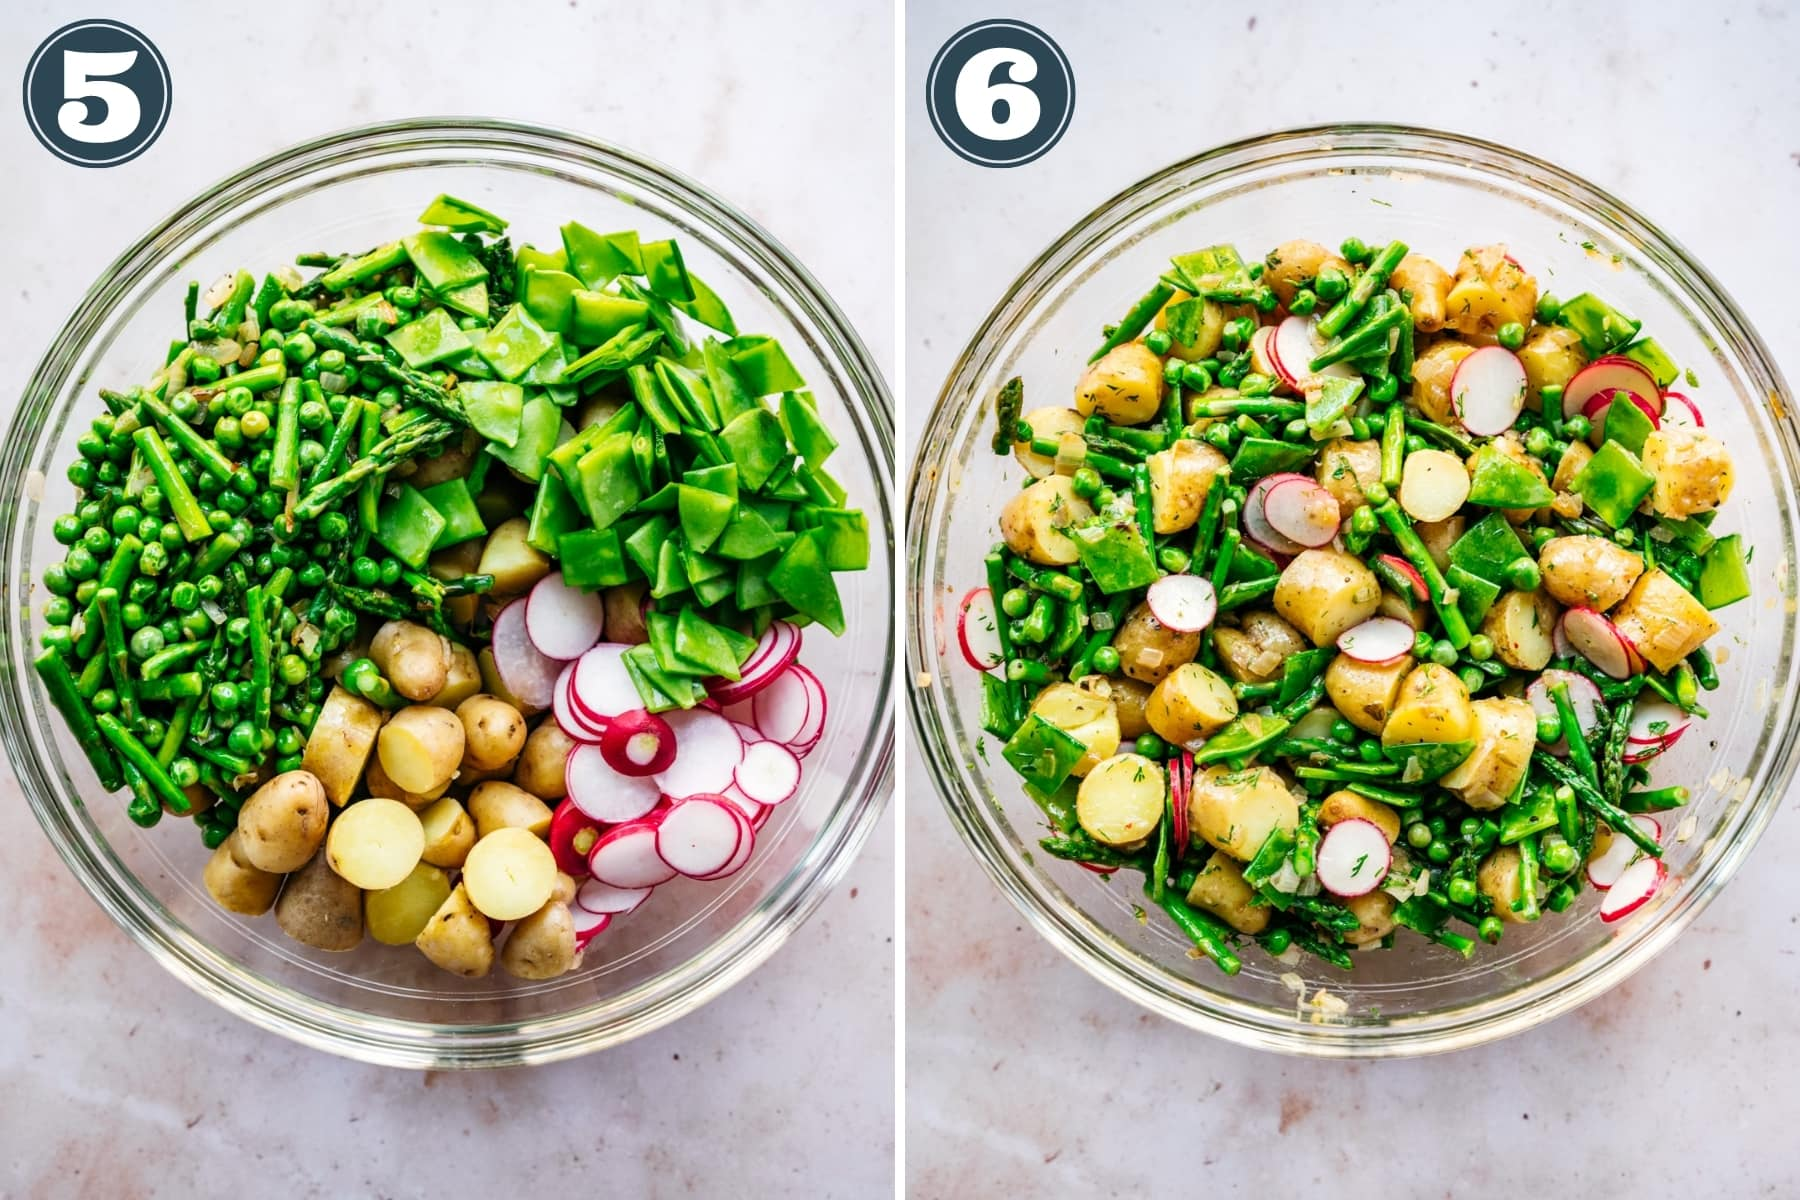 before and after mixing together ingredients for spring potato salad with asparagus, peas and radishes.